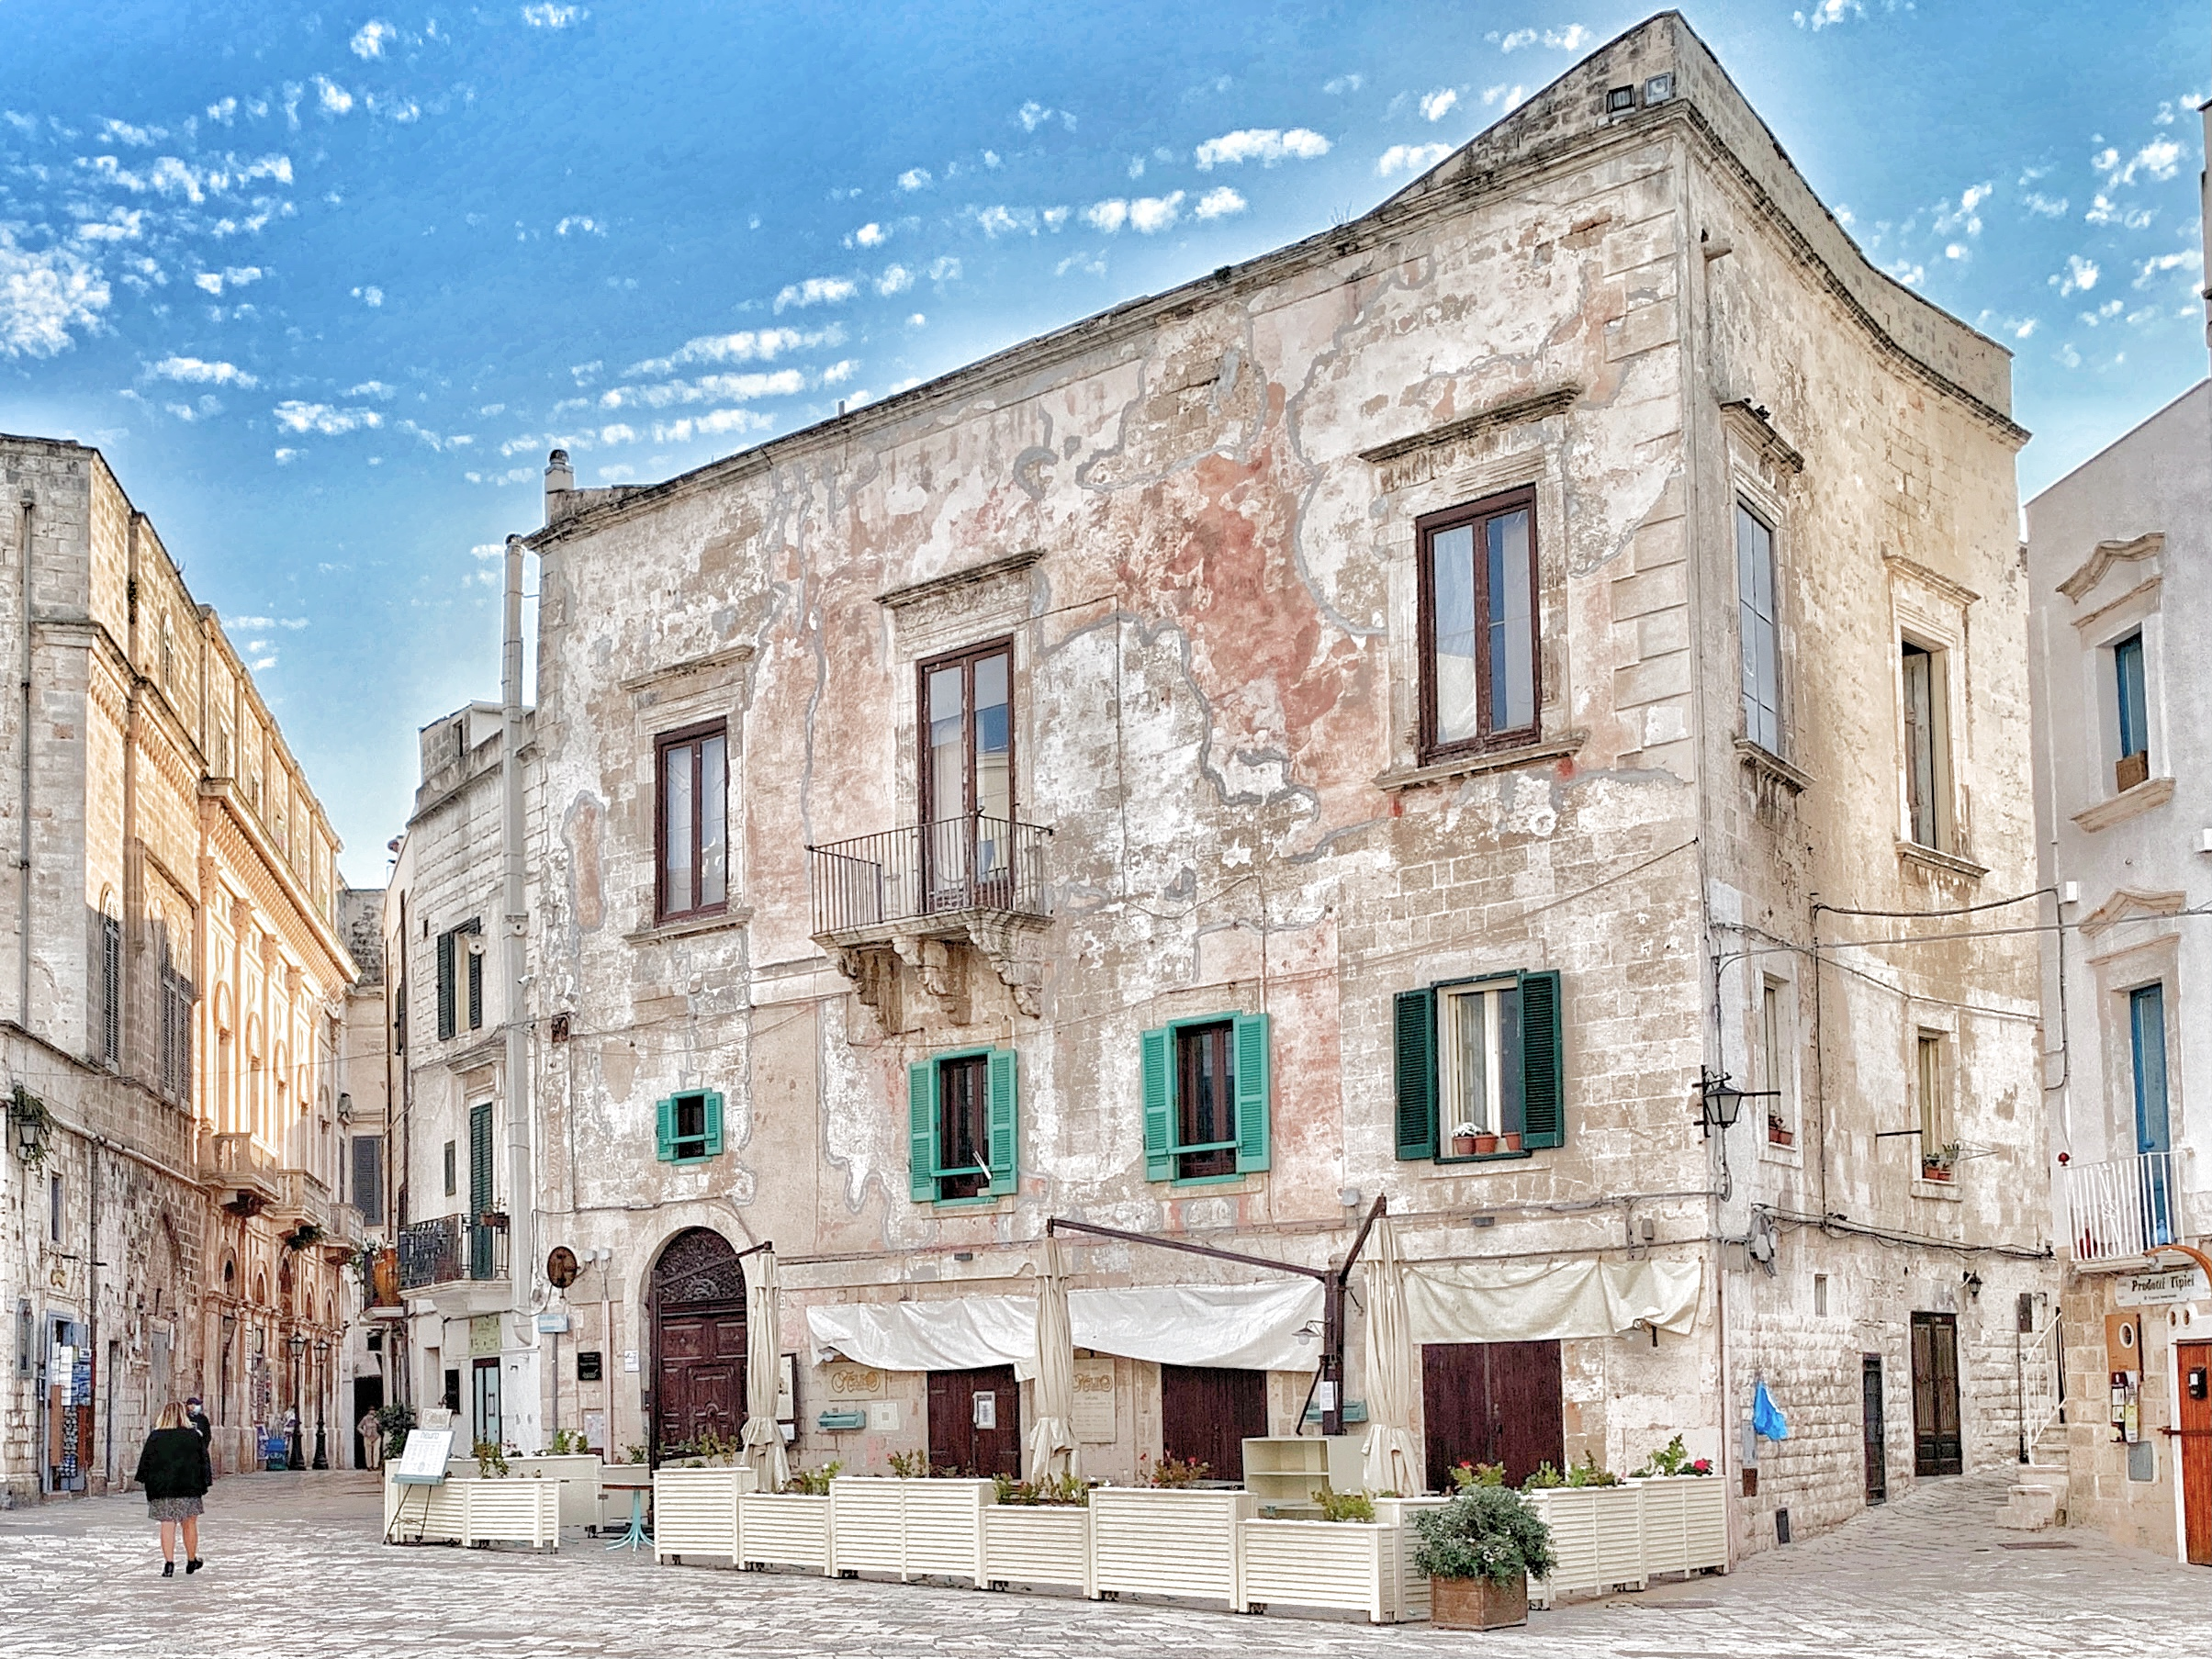 Polignano a Mare is one of the most famous places in Puglia